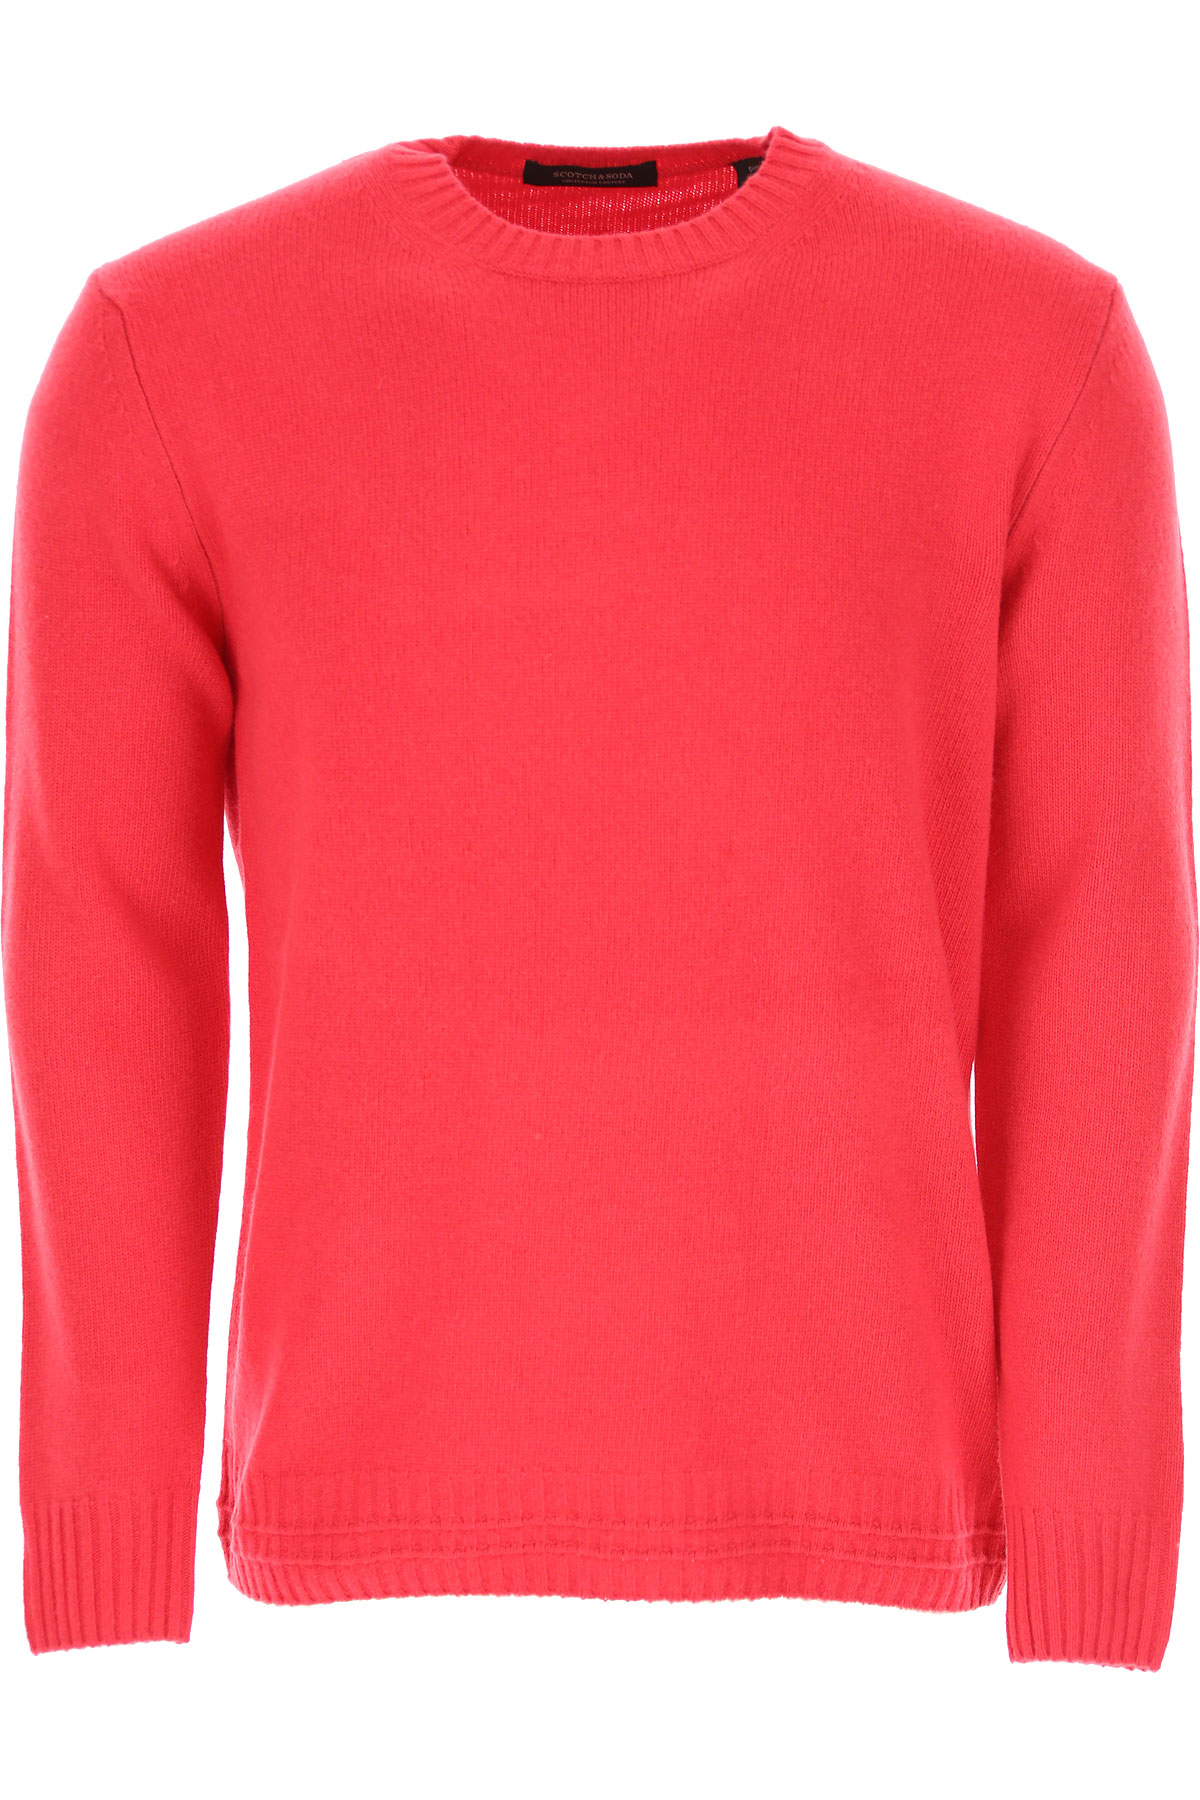 Scotch & Soda Sweater for Men Jumper On Sale, coral red, Wool, 2019, L M S